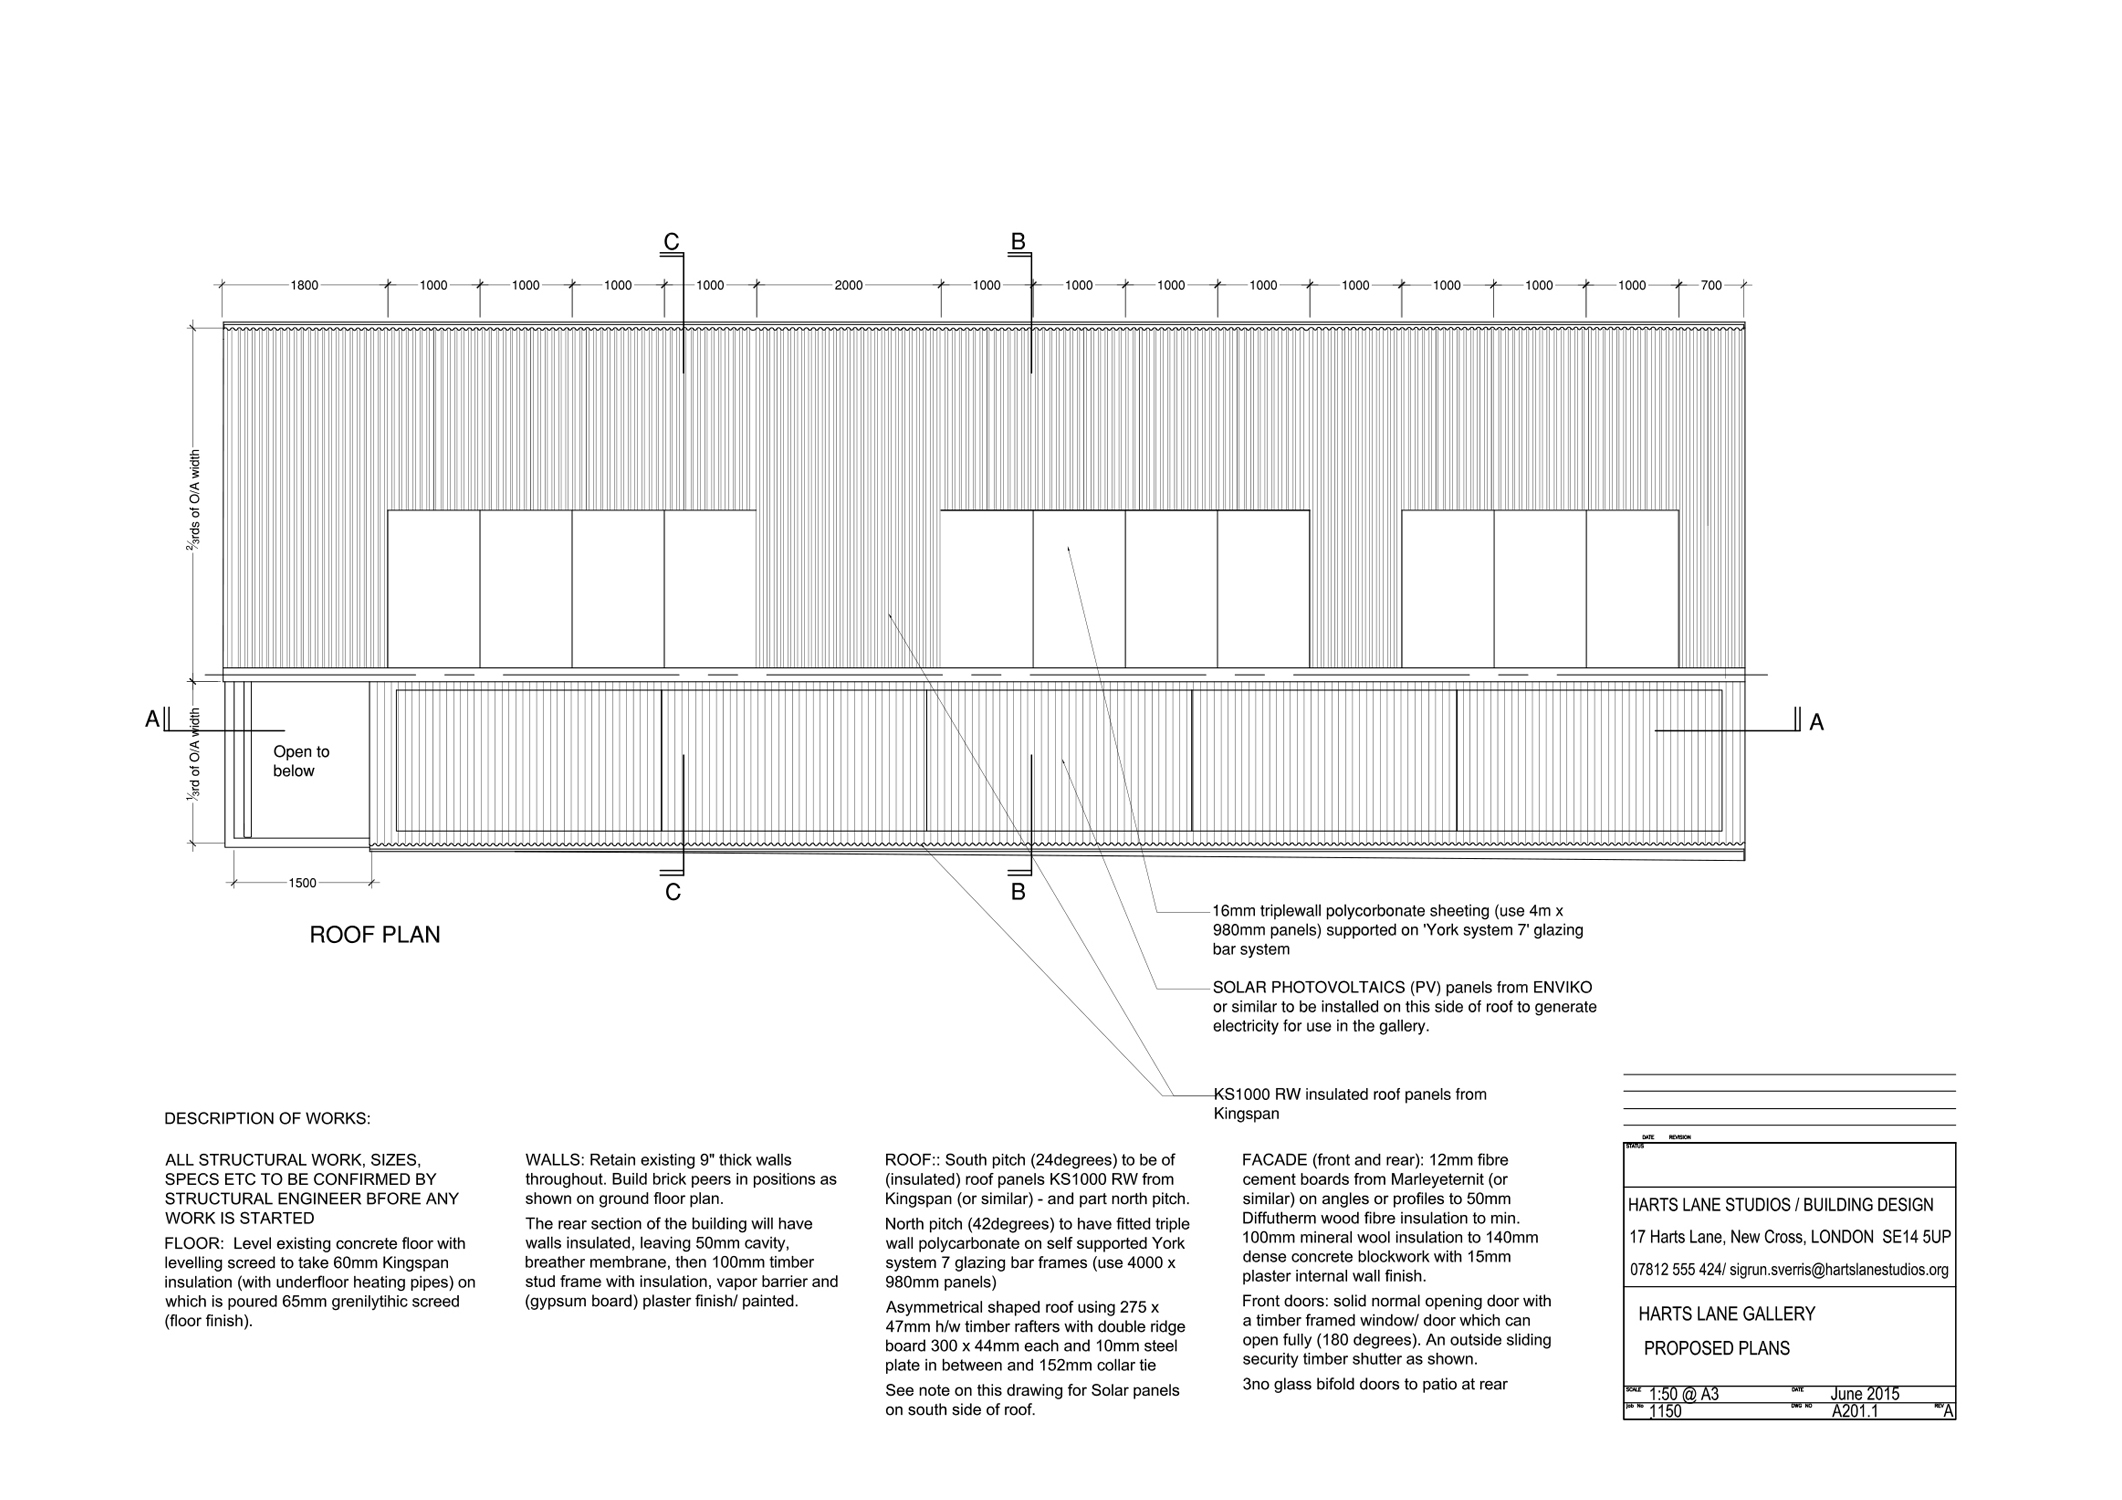 Hartslane Gallery A201.1 roof plan SCALED.jpg